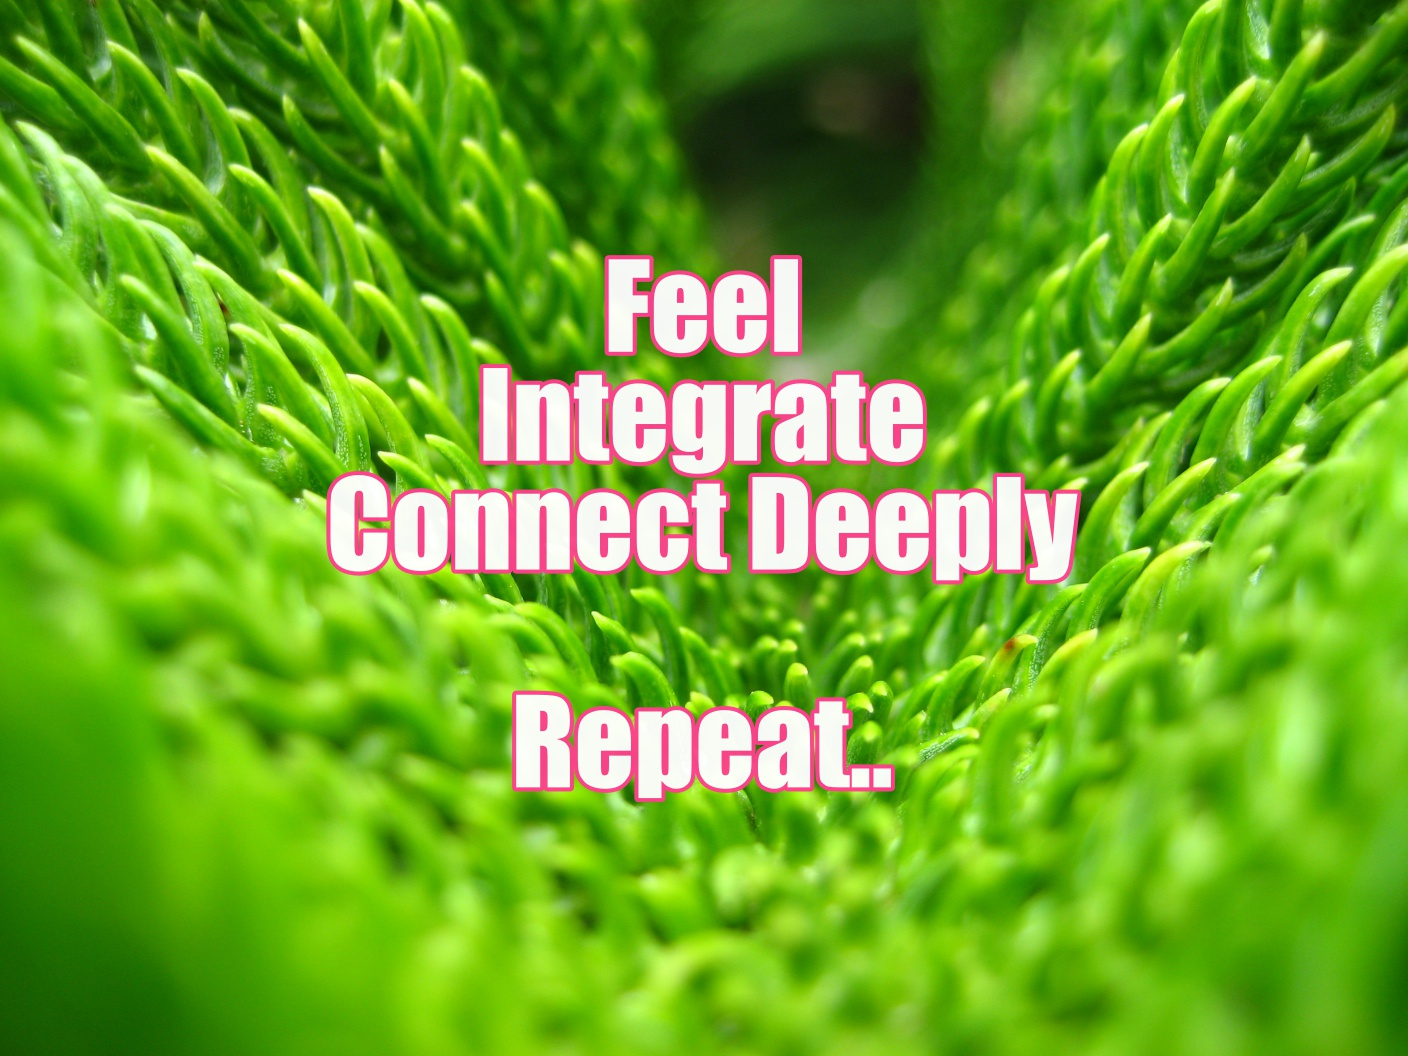 FEEL. INTEGRATE. CONNECT DEEPLY.